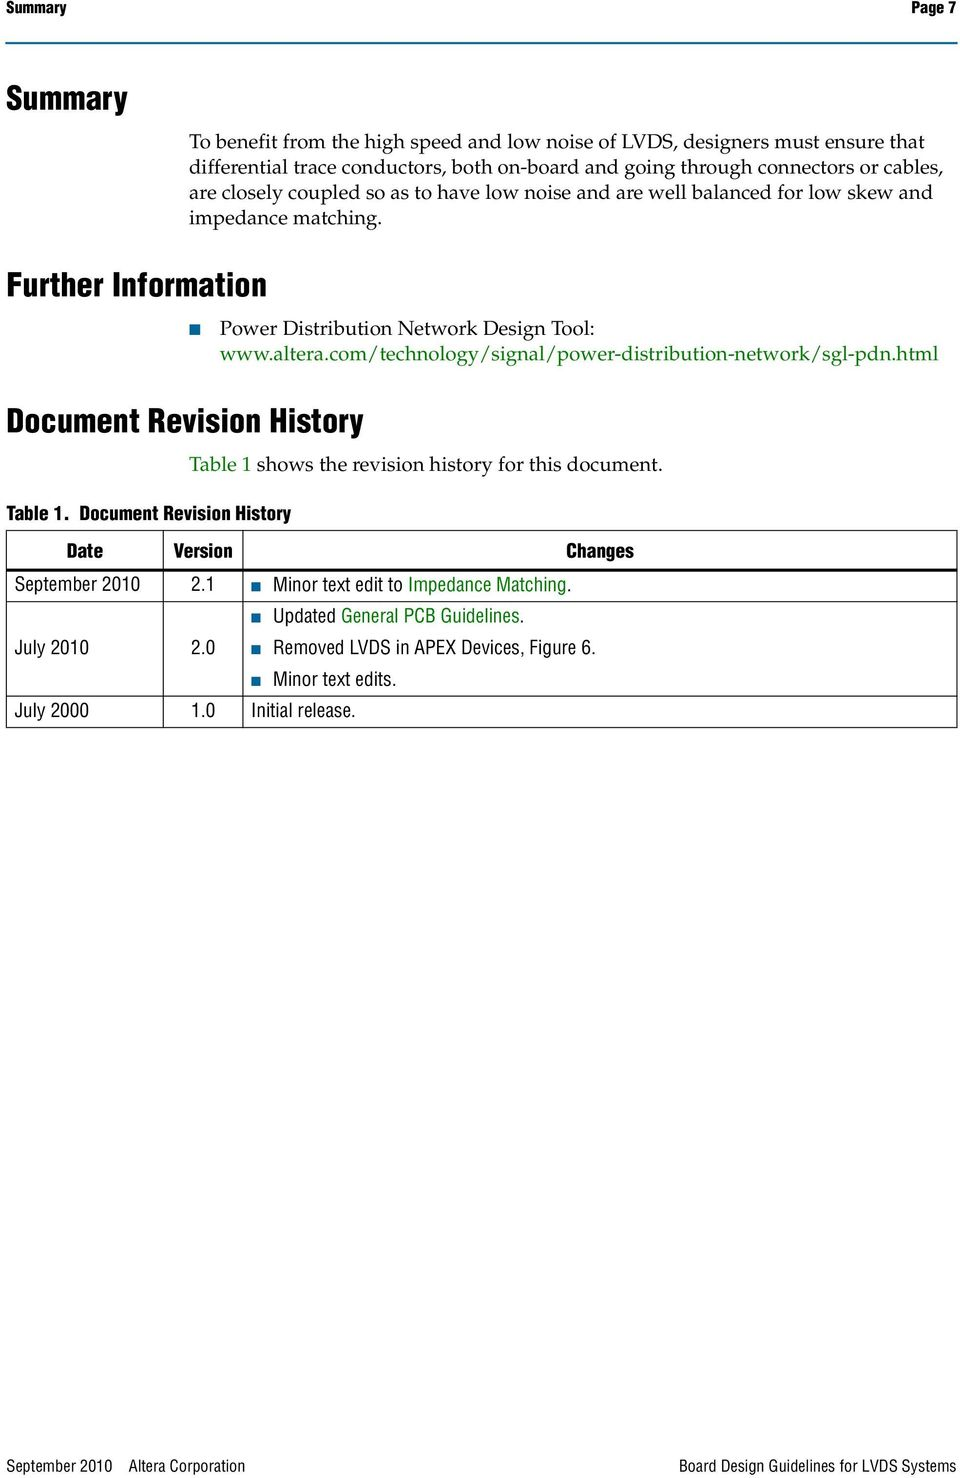 Document Revision History Power Distribution Network Design Tool: www.altera.com/technology/signal/power-distribution-network/sgl-pdn.html Table 1 shows the revision history for this document.